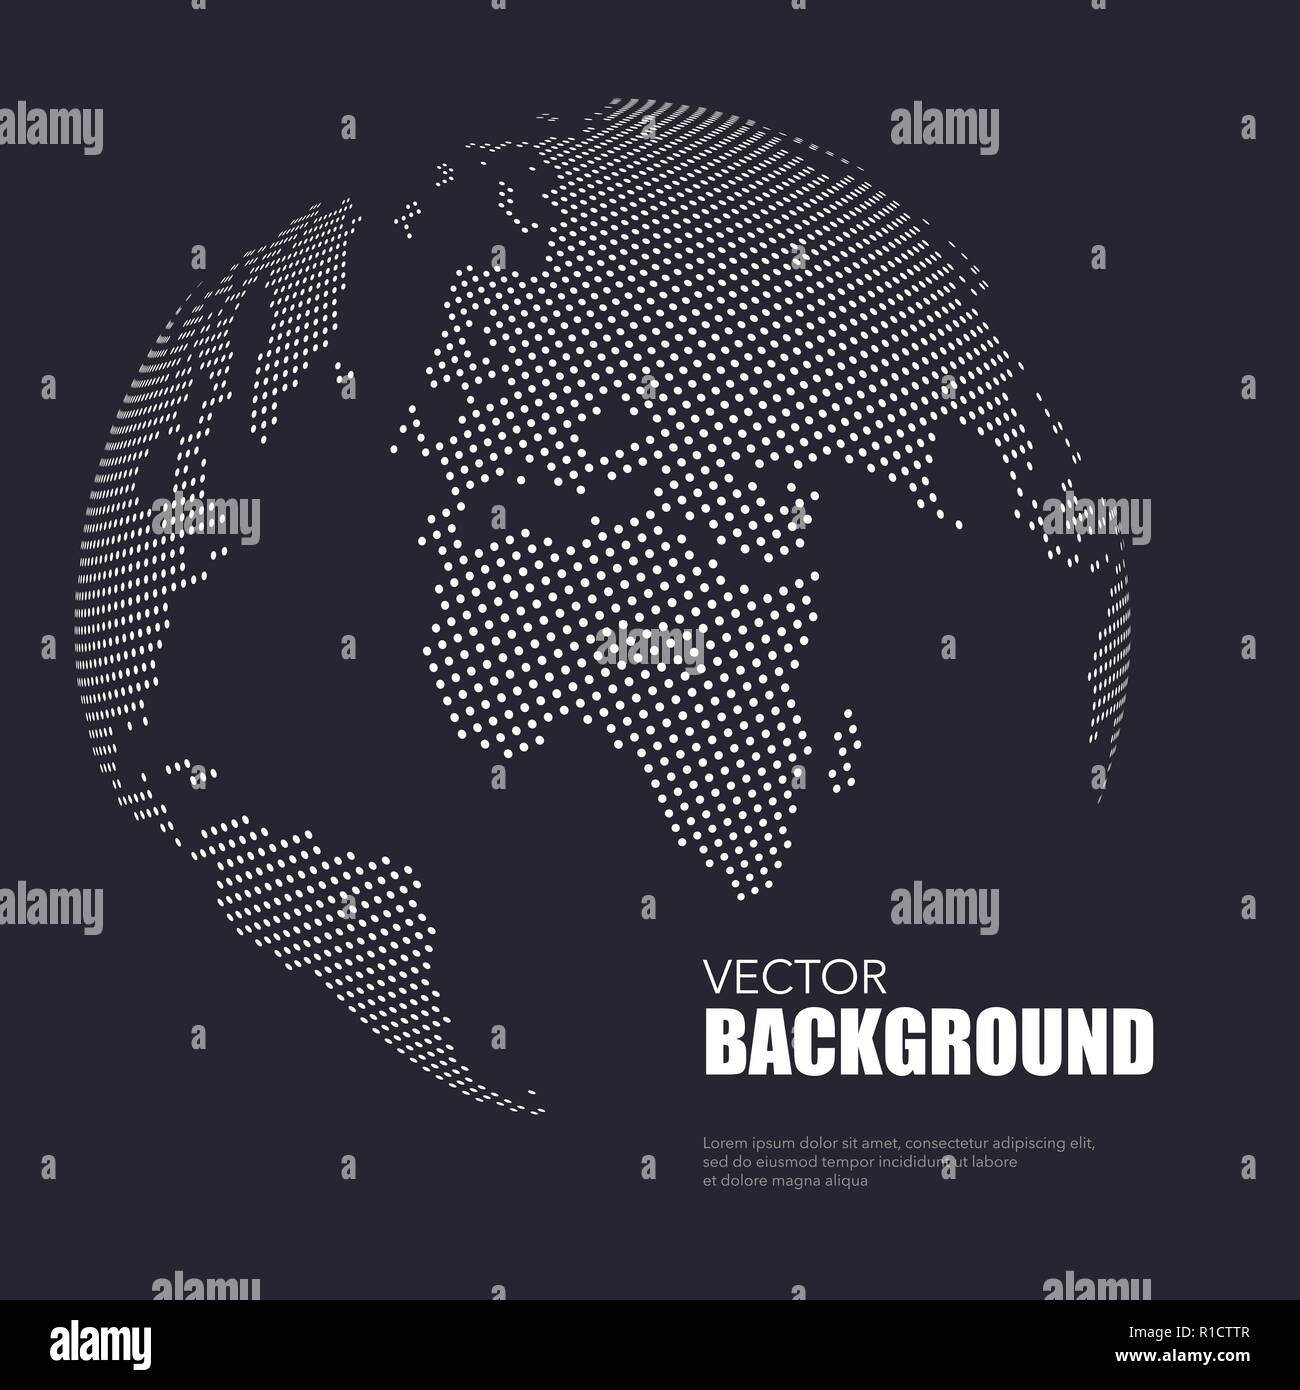 Dark background with white dotted world map with sample text - Stock Image